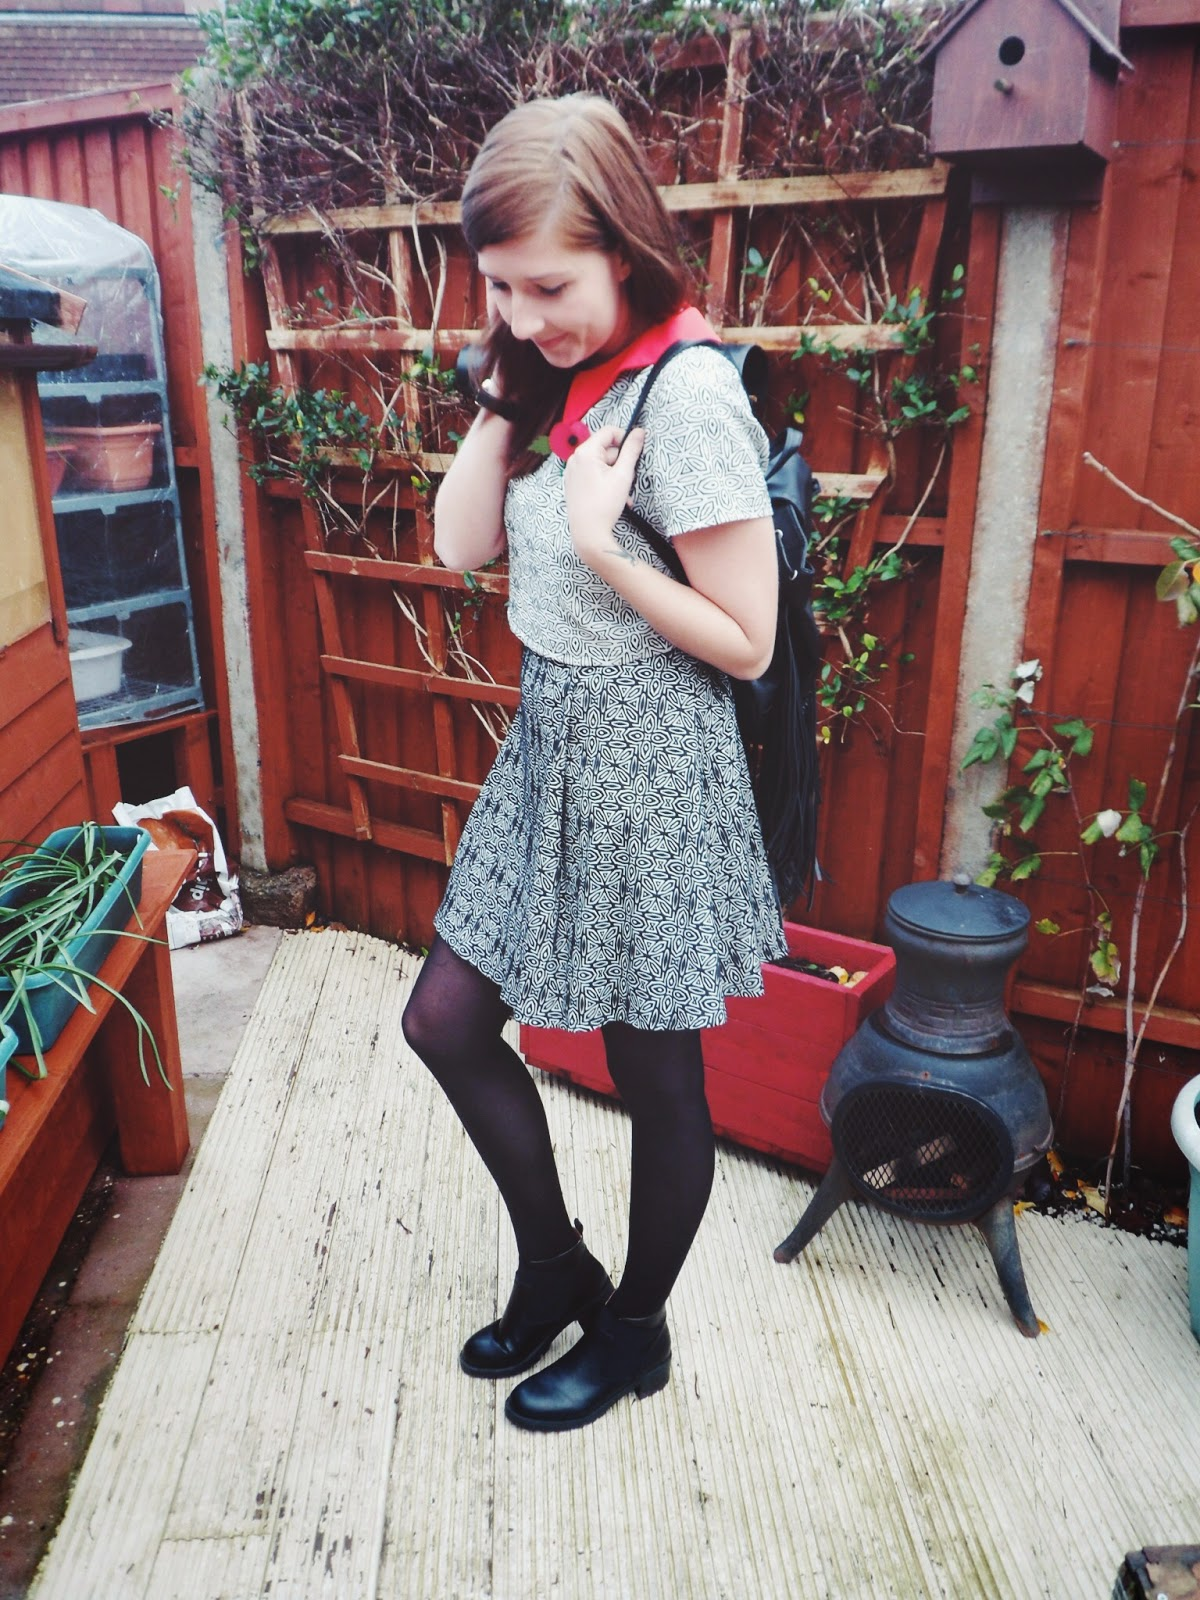 fbloggers, fblogger, fashion, fashionbloggers, wiw, ootd, outfitoftheday, lotd, lookoftheday, whatimwearing, whatibought, primark, asos, boots, peterpancollar, remembrancesunday, poppy, asseenonme